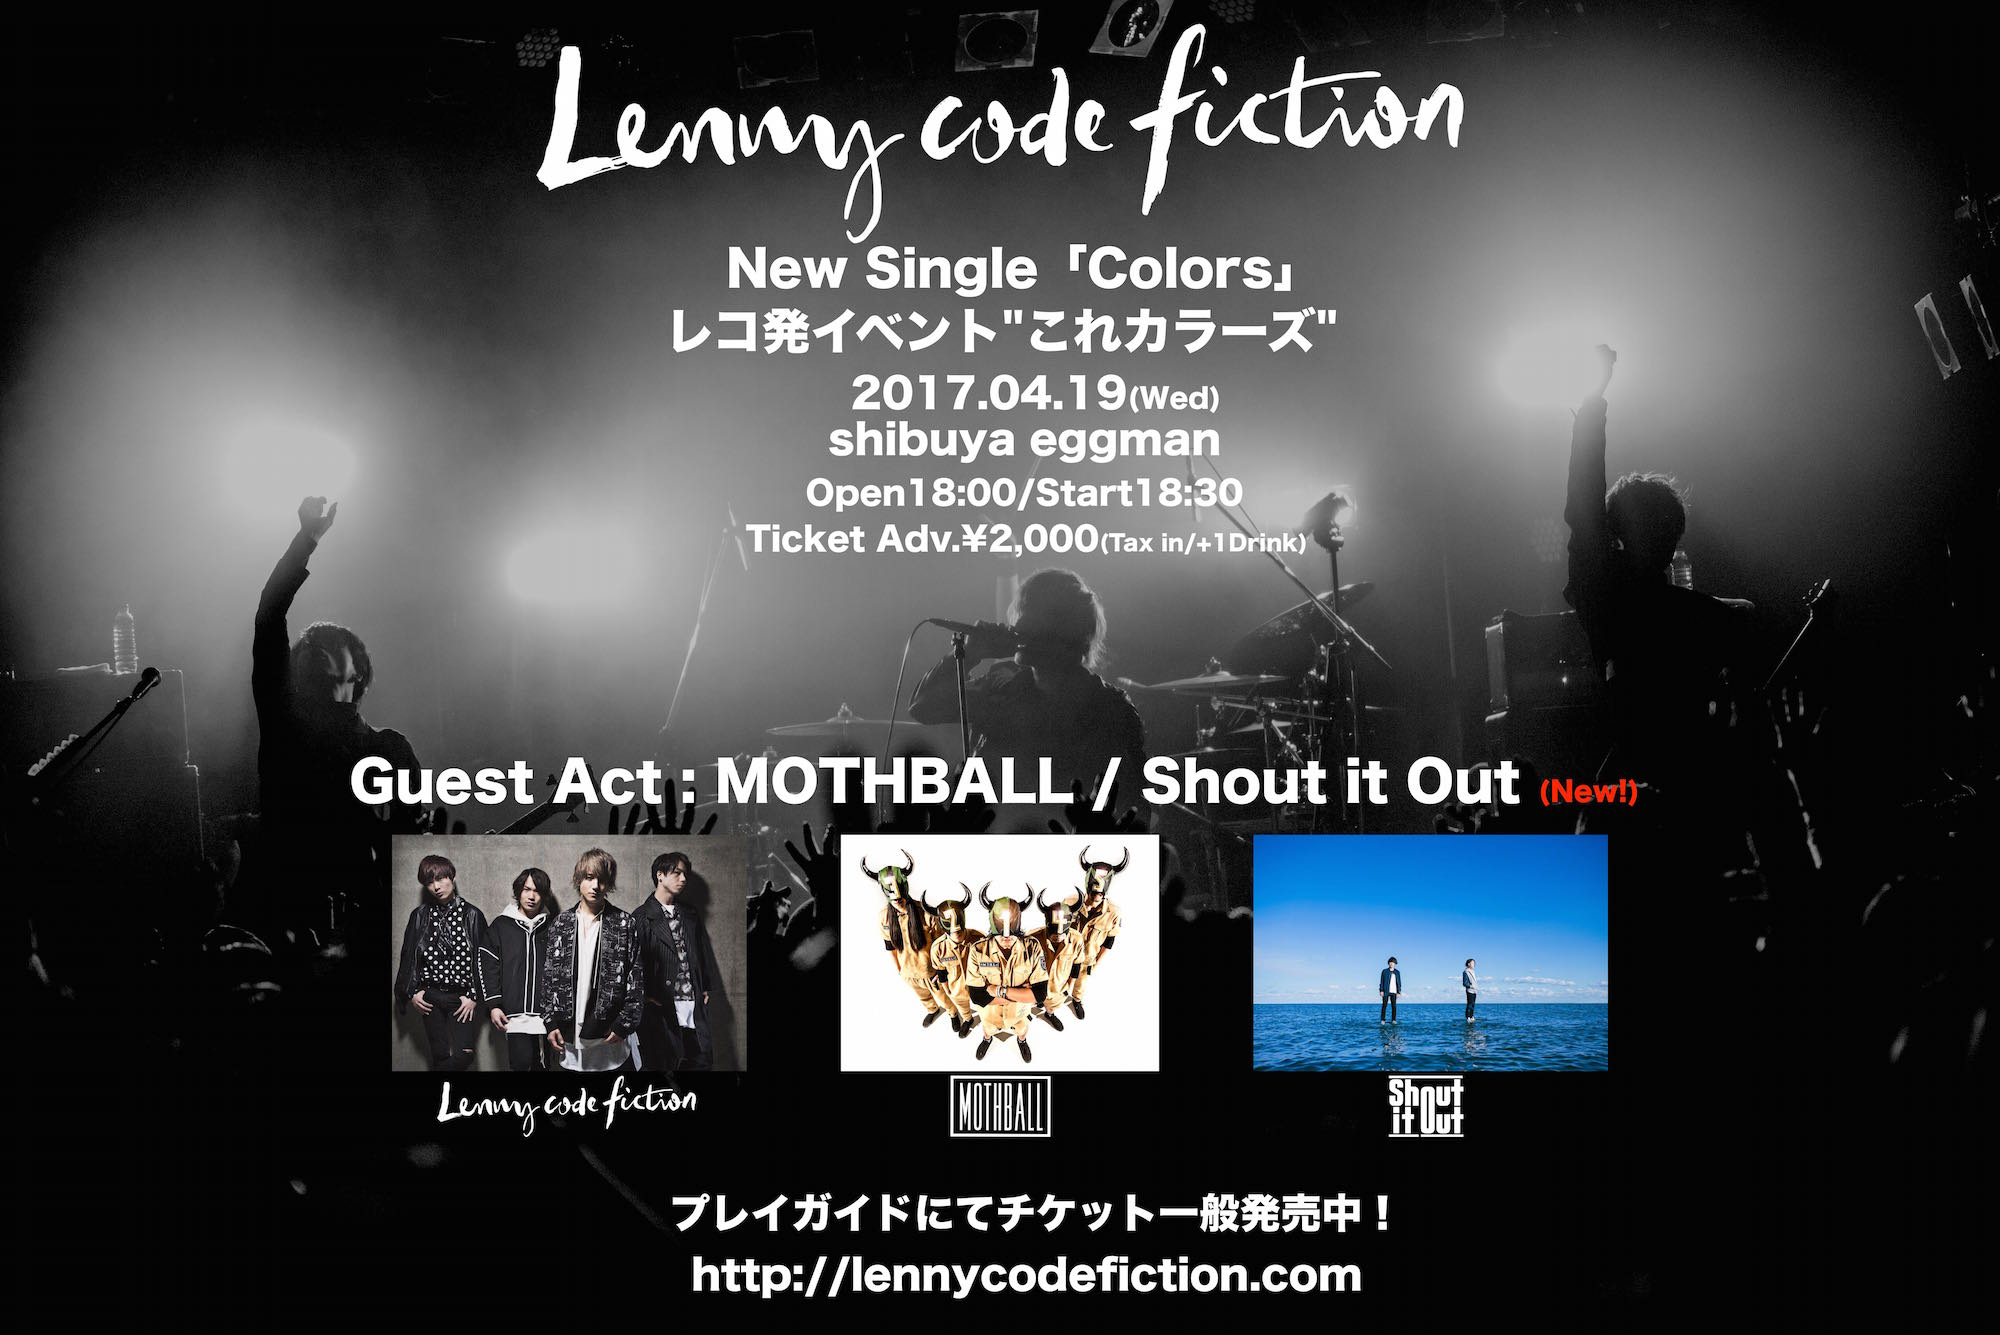 "Lenny code fiction New Single「Colors」レコ発イベント""これカラーズ"""